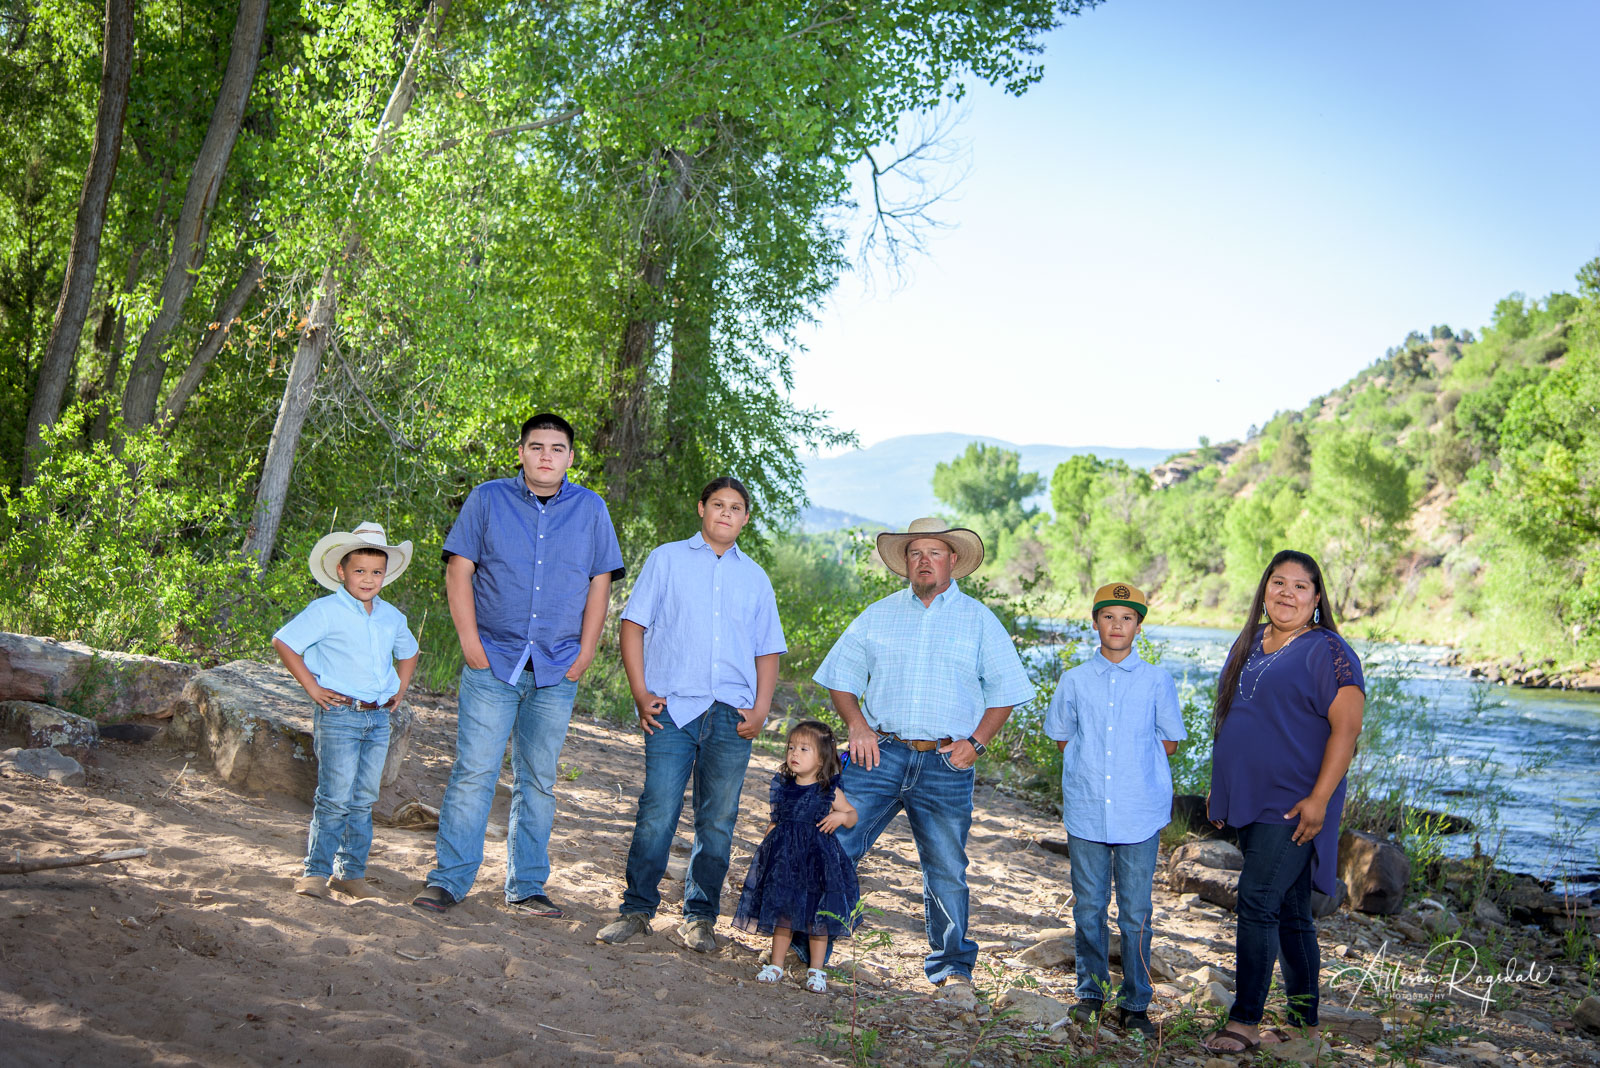 Outdoor family portraits in Durango, Colorado